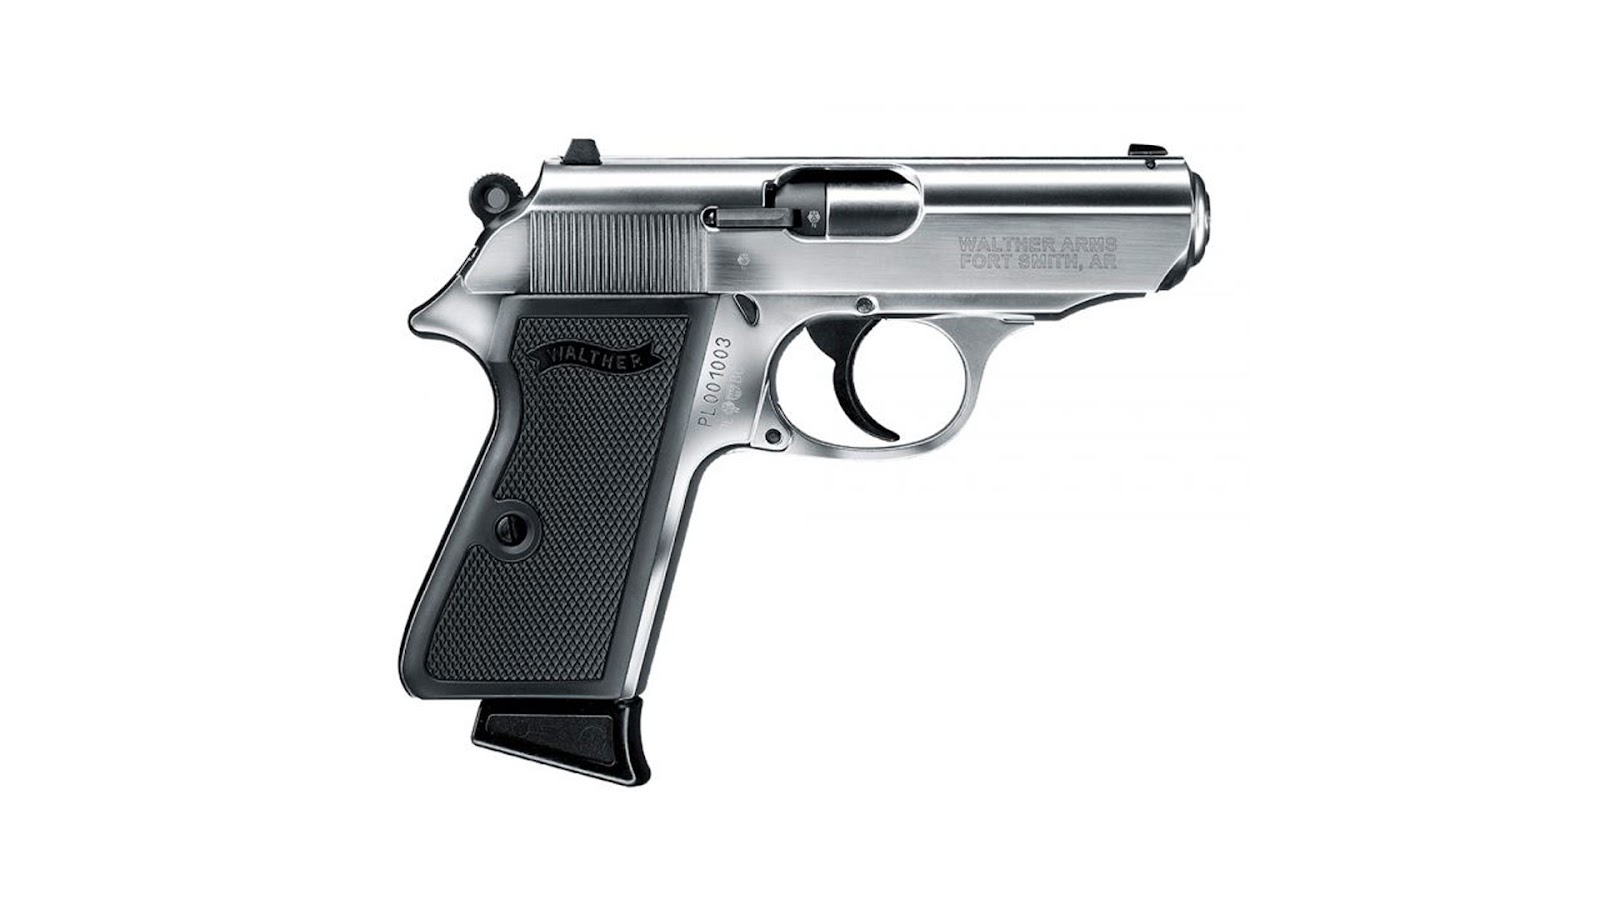 Walther PPK/S pistol